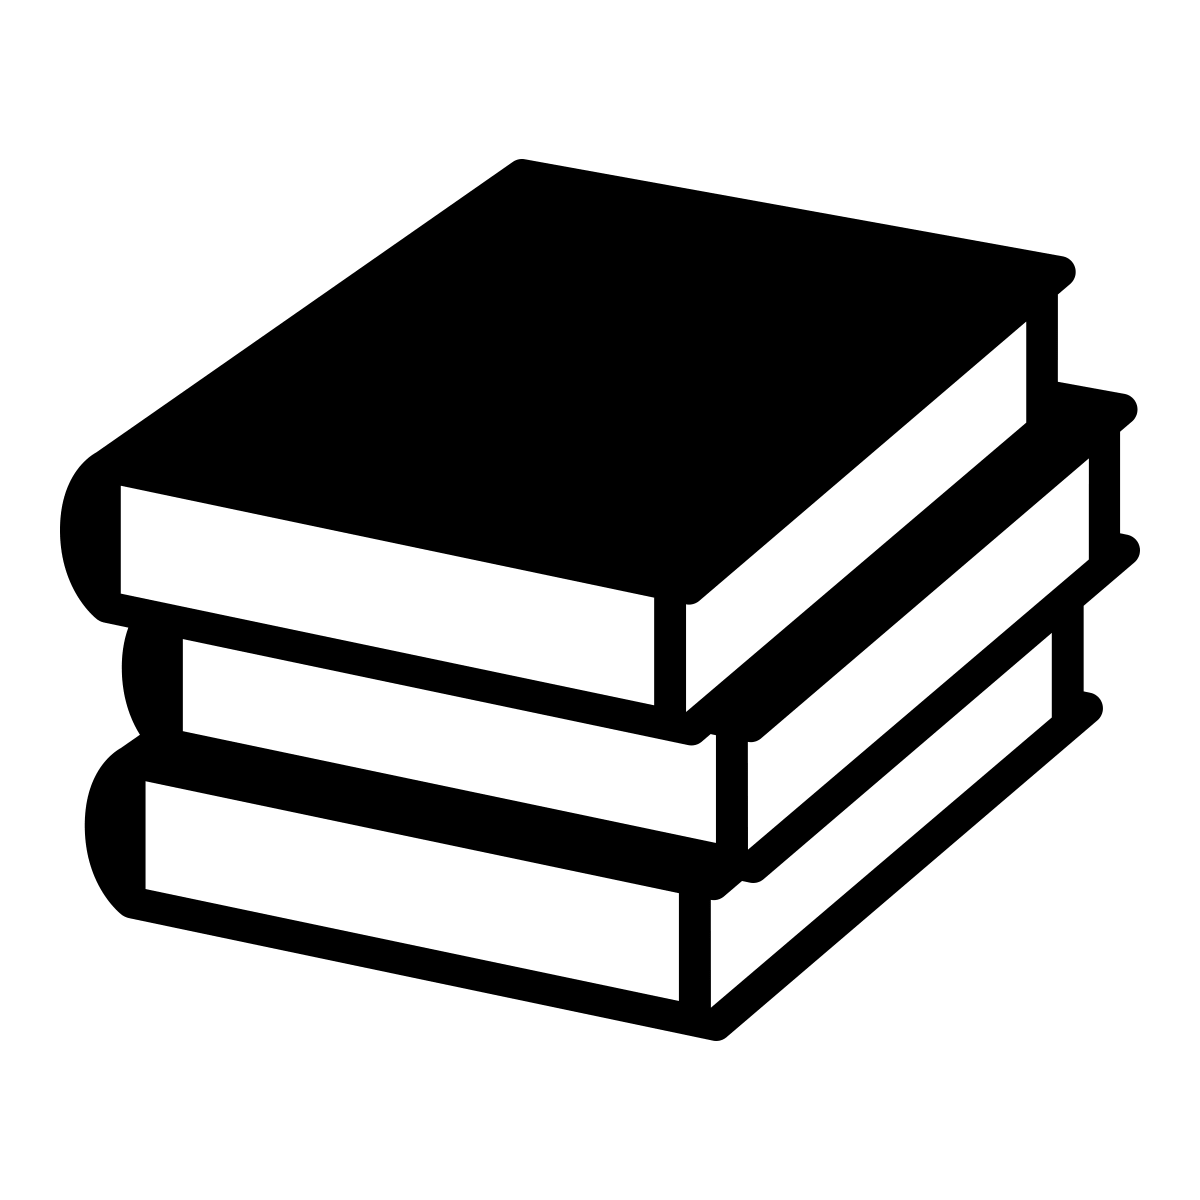 black and white stack of books icon